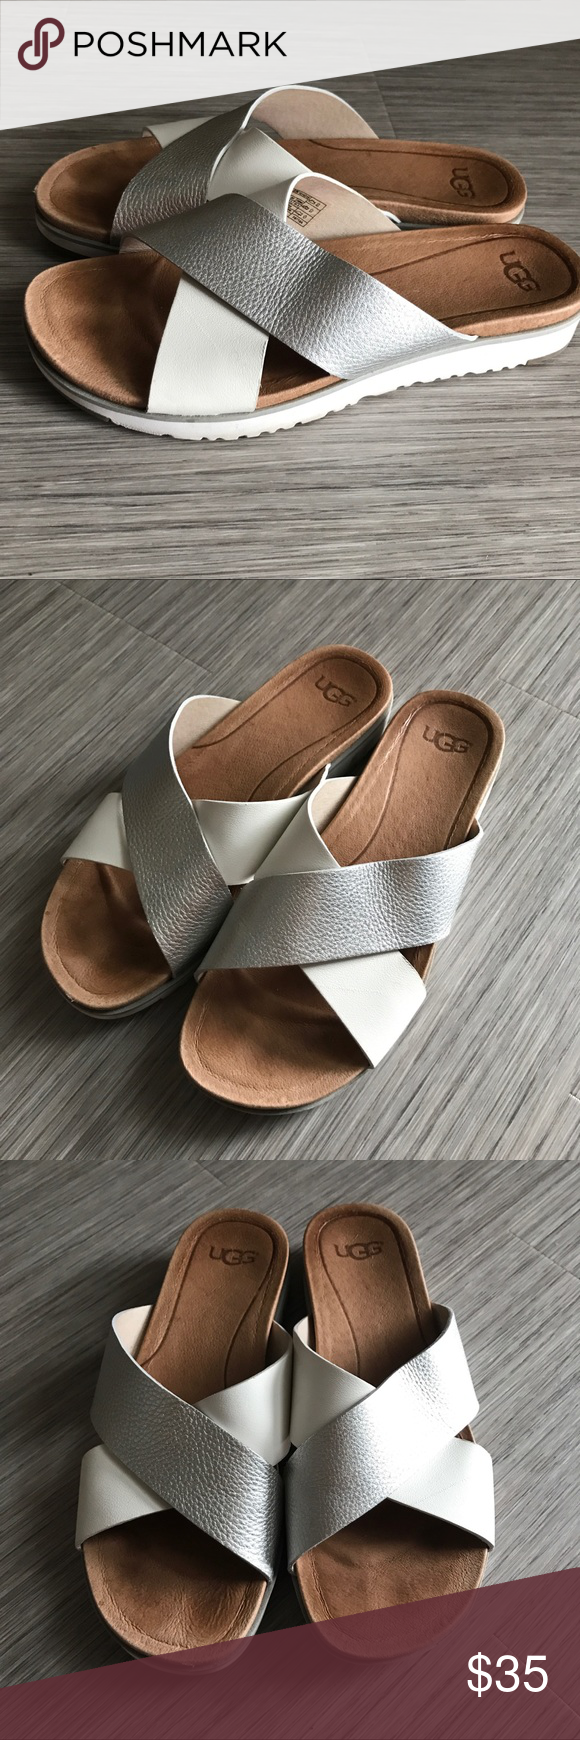 UGG Karl slides Leather silver and white criss cross straps, soft leather lining, rubber toe and heel, easy slip on style, fits true to size, only worn a few times UGG Shoes Sandals